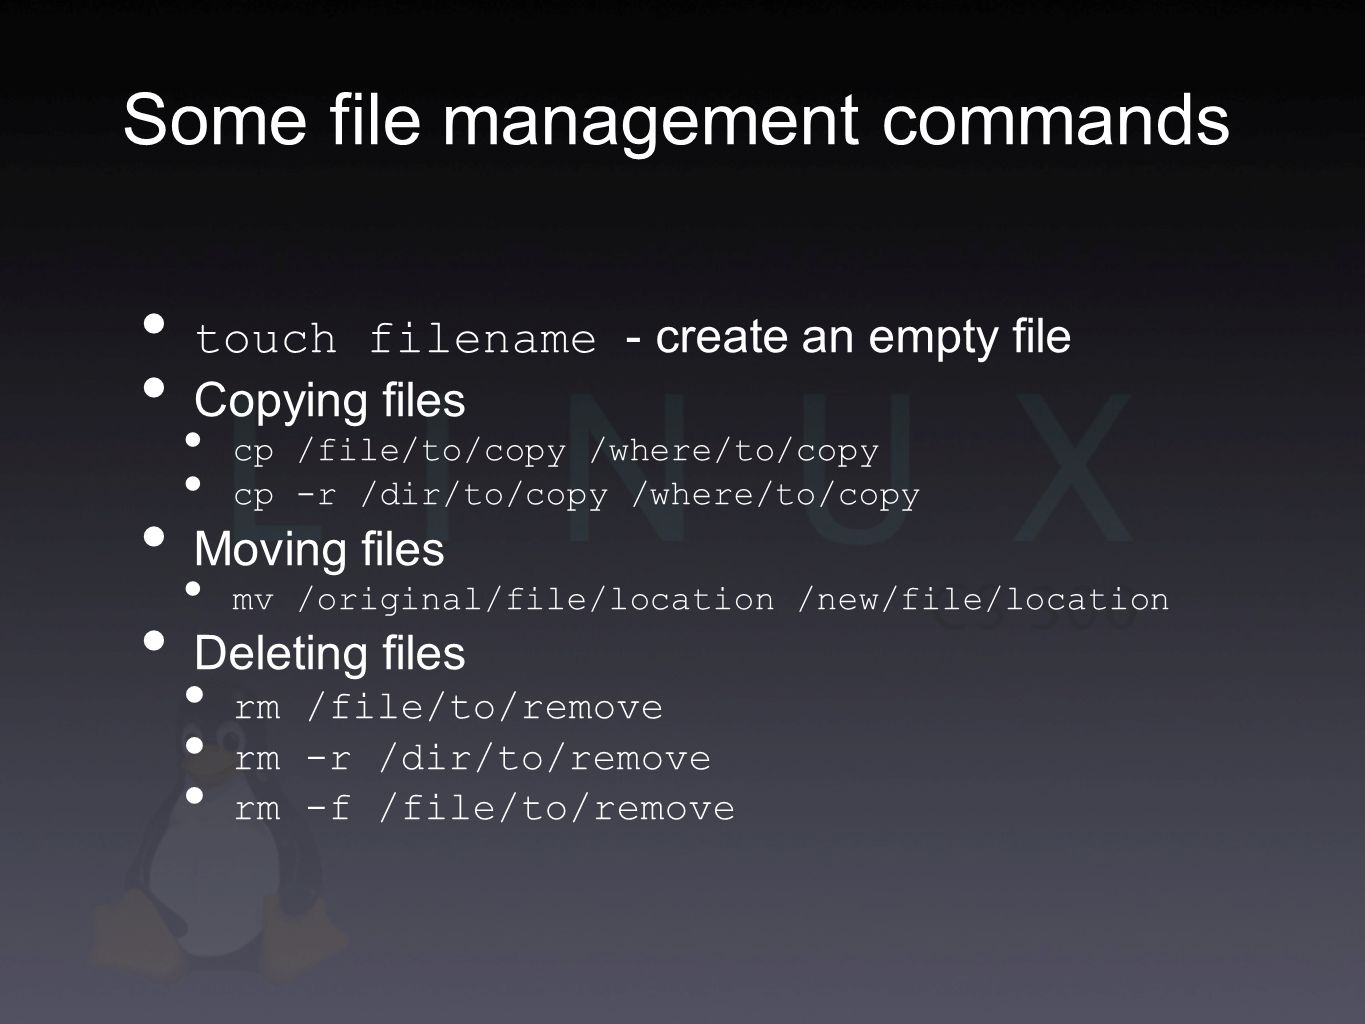 Some file management commands touch filename - create an empty file Copying files cp /file/to/copy /where/to/copy cp -r /dir/to/copy /where/to/copy Moving files mv /original/file/location /new/file/location Deleting files rm /file/to/remove rm -r /dir/to/remove rm -f /file/to/remove